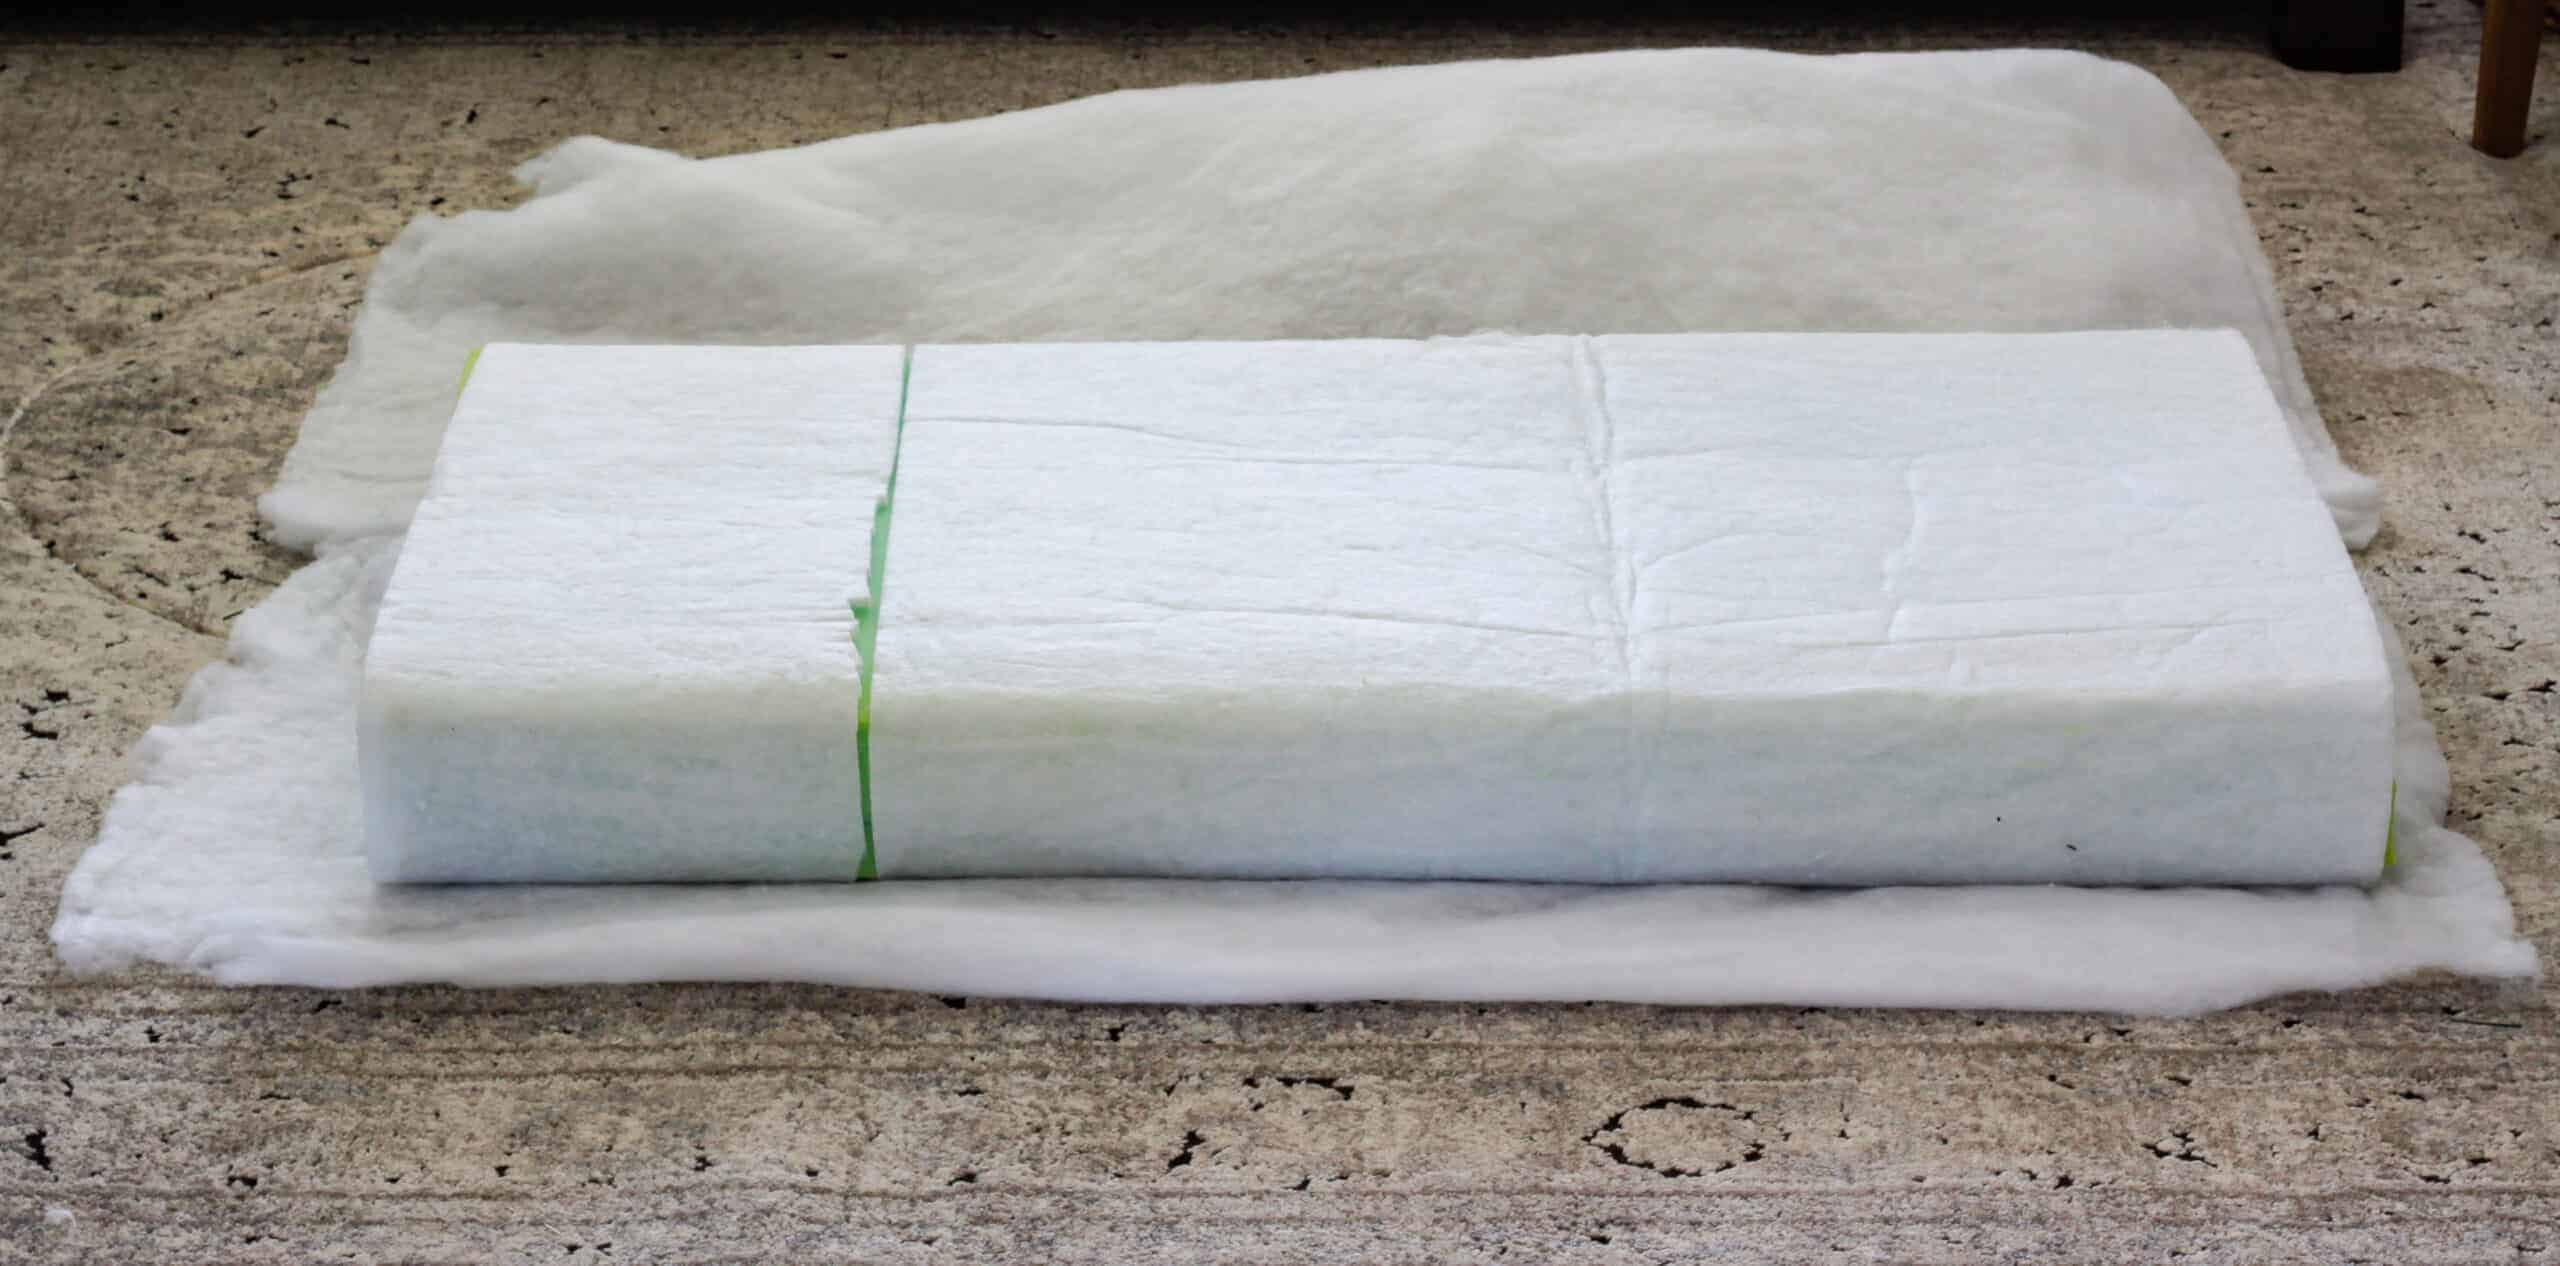 dacron wrapped cushion on top of batting